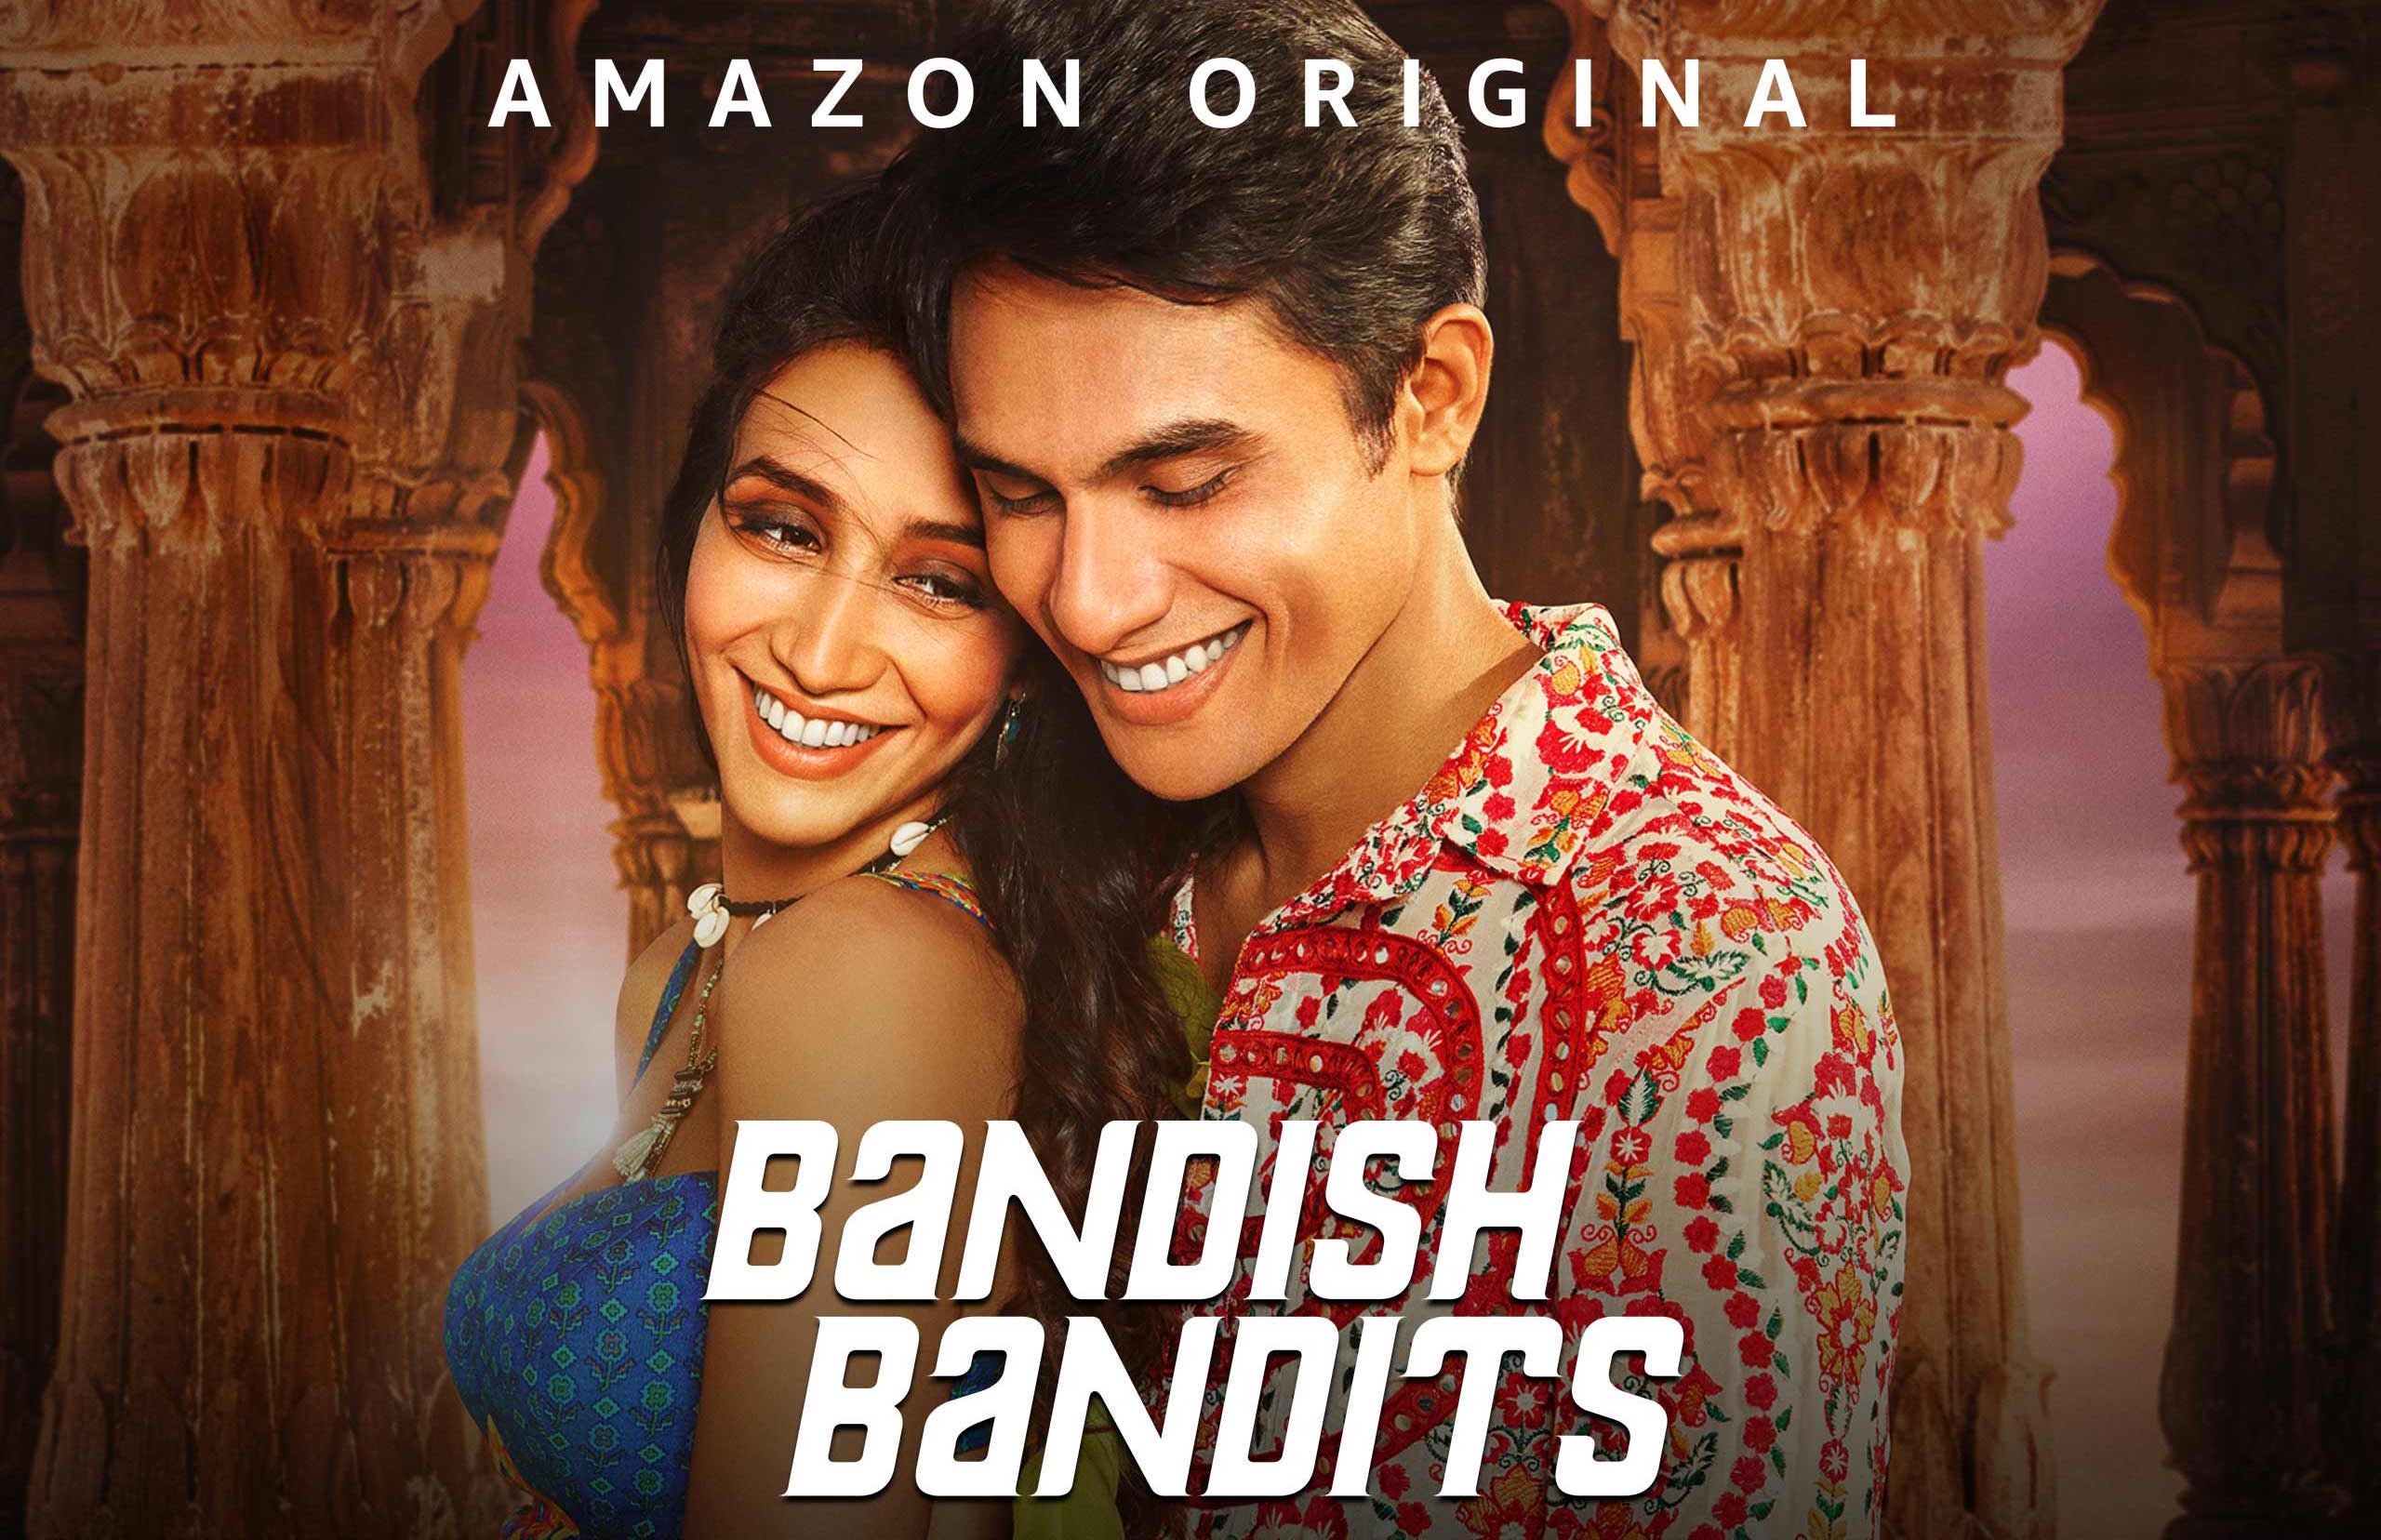 Bandish Bandits Featured